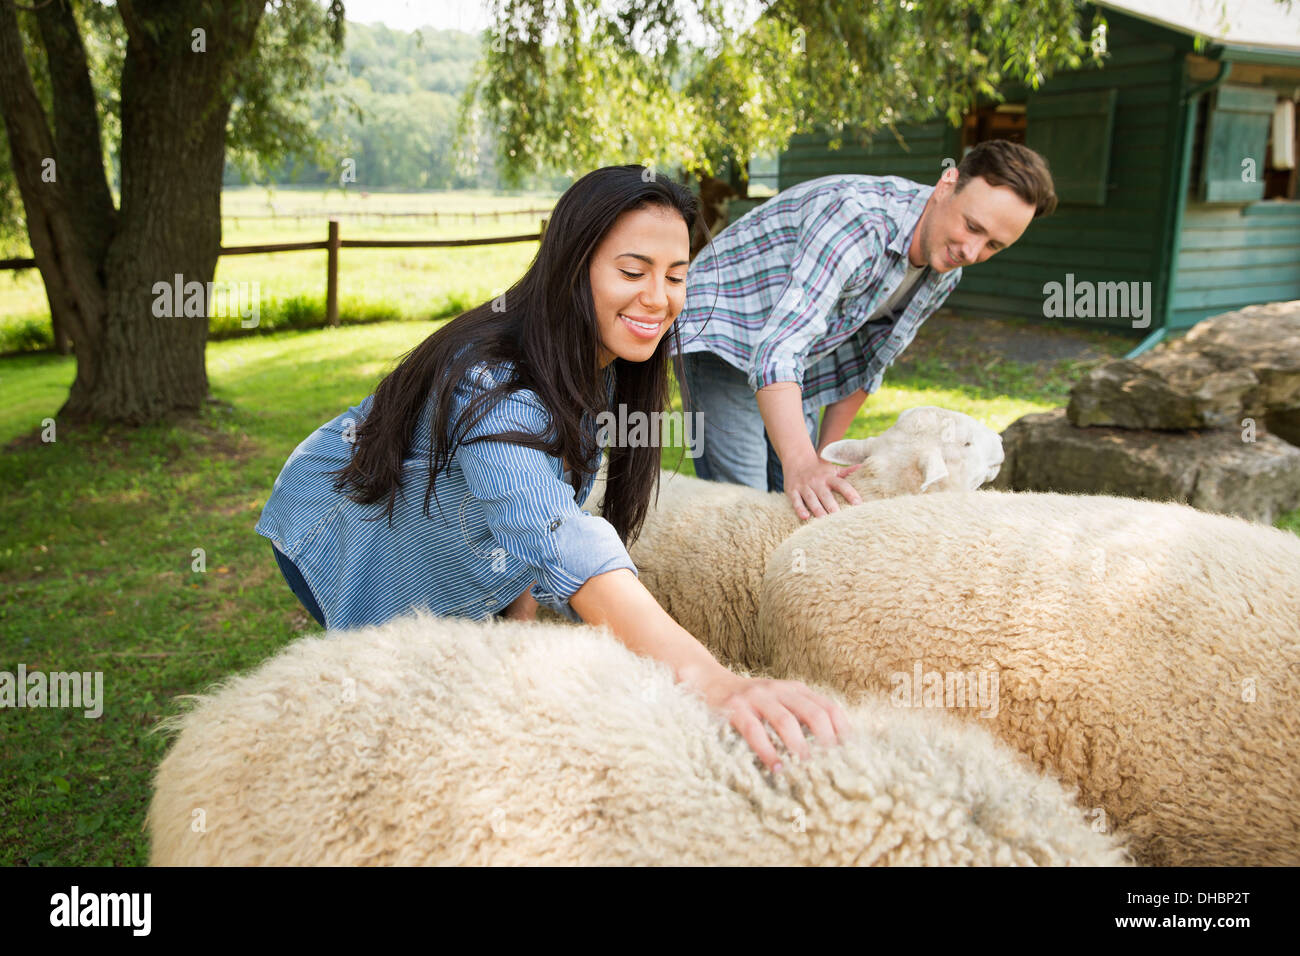 An organic farm in the Catskills. Two people in a paddock with two large sheep. Stock Photo